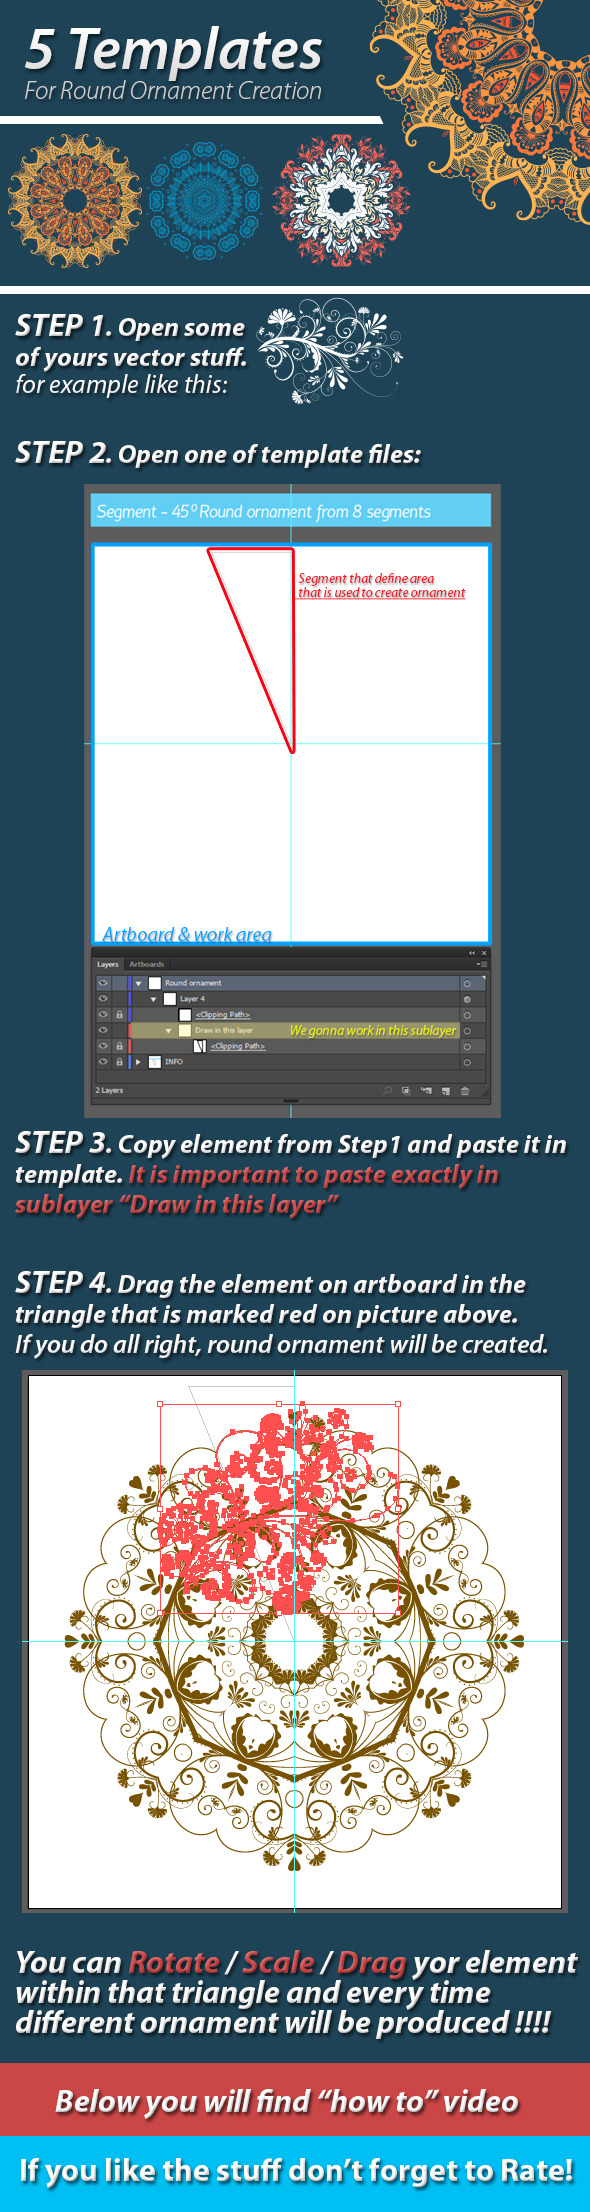 5 Templates For Round Ornament Creation - Actions Illustrator